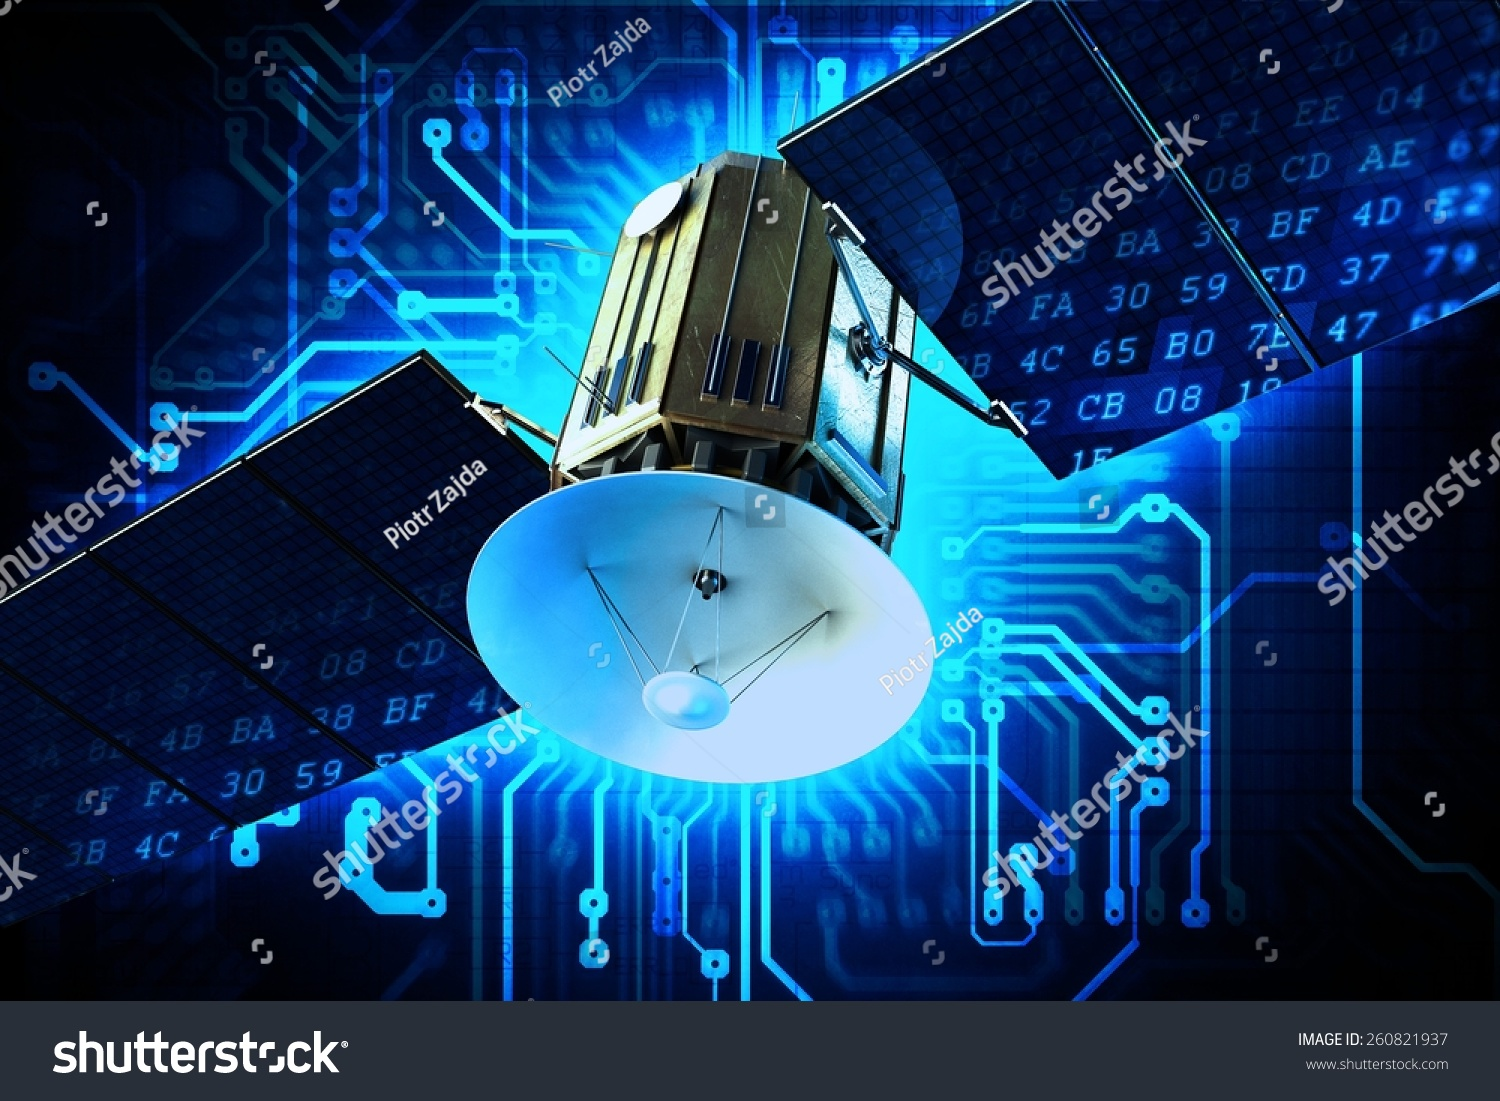 Satellite Technology Concept Illustration Communication Circuit Boards With Clock Hands Royalty Free Stock Image On Board Blue Background